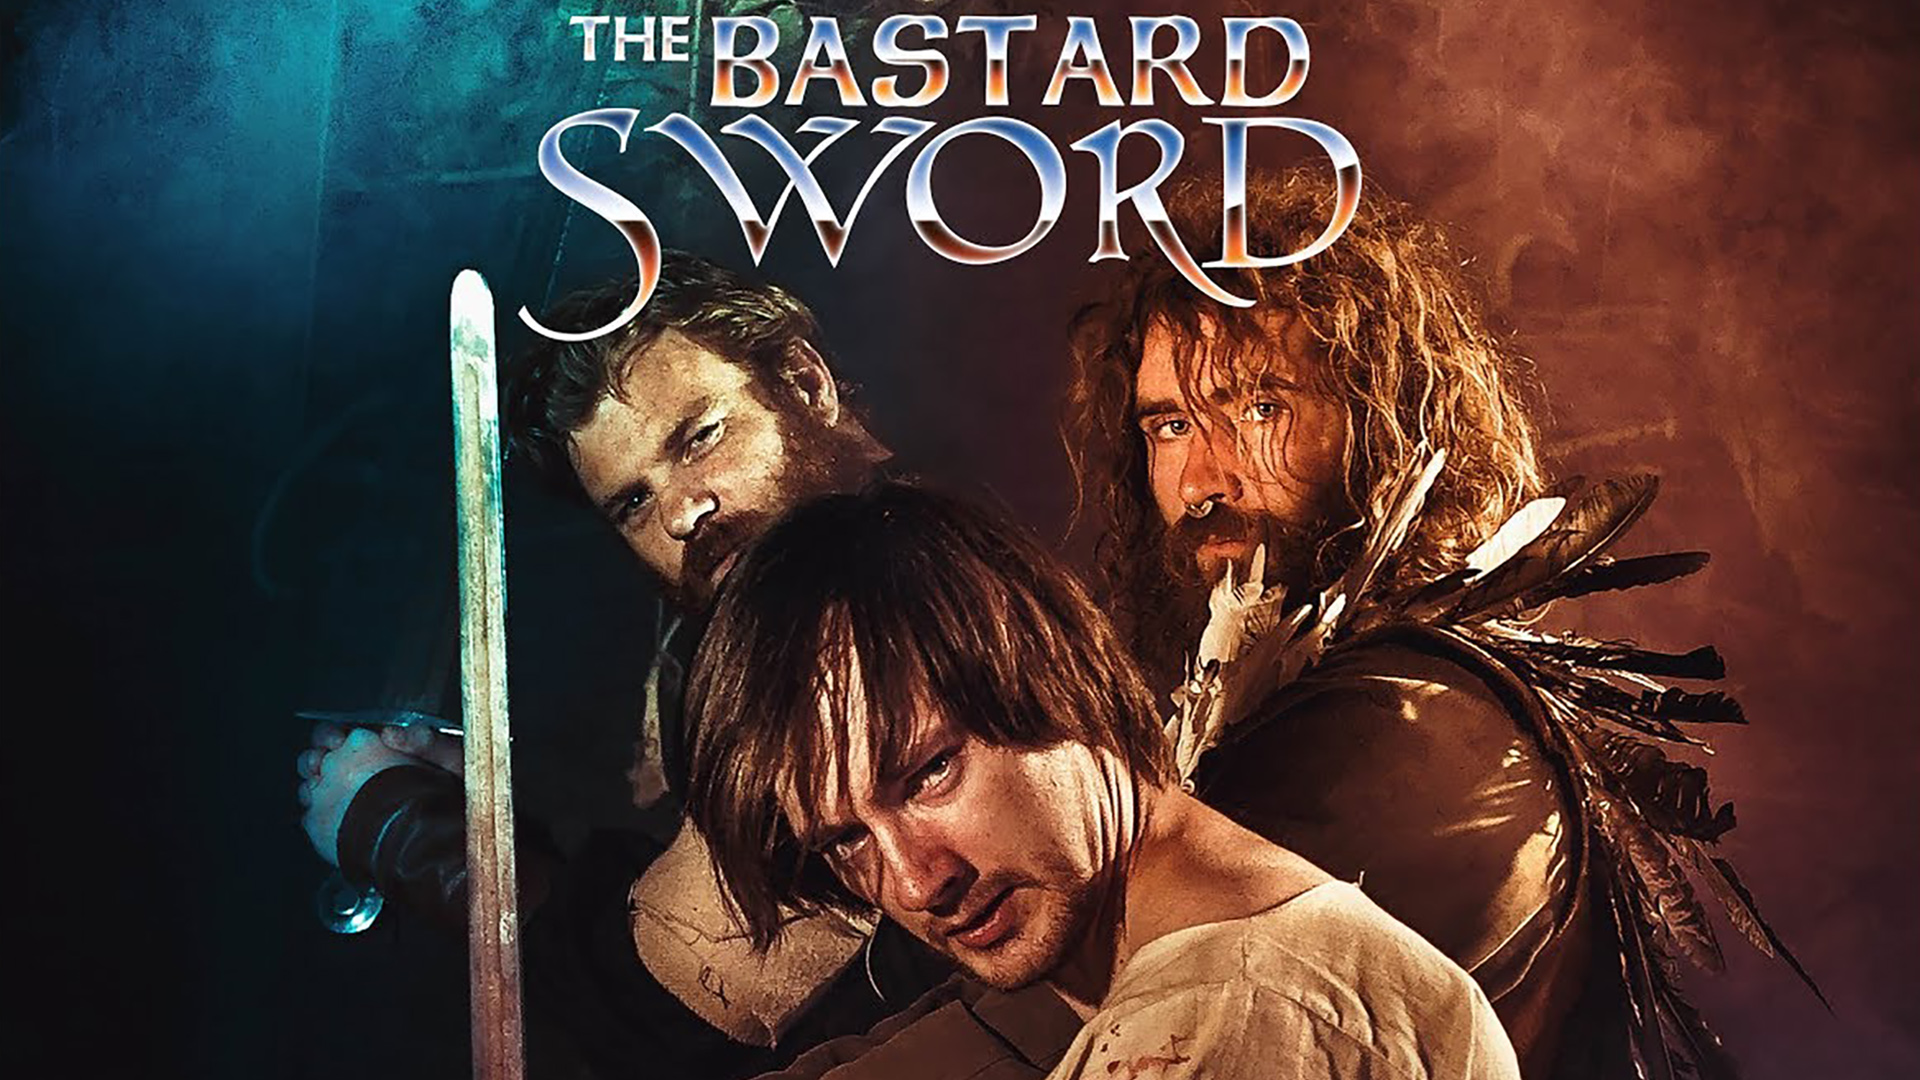 The Bastard Sword